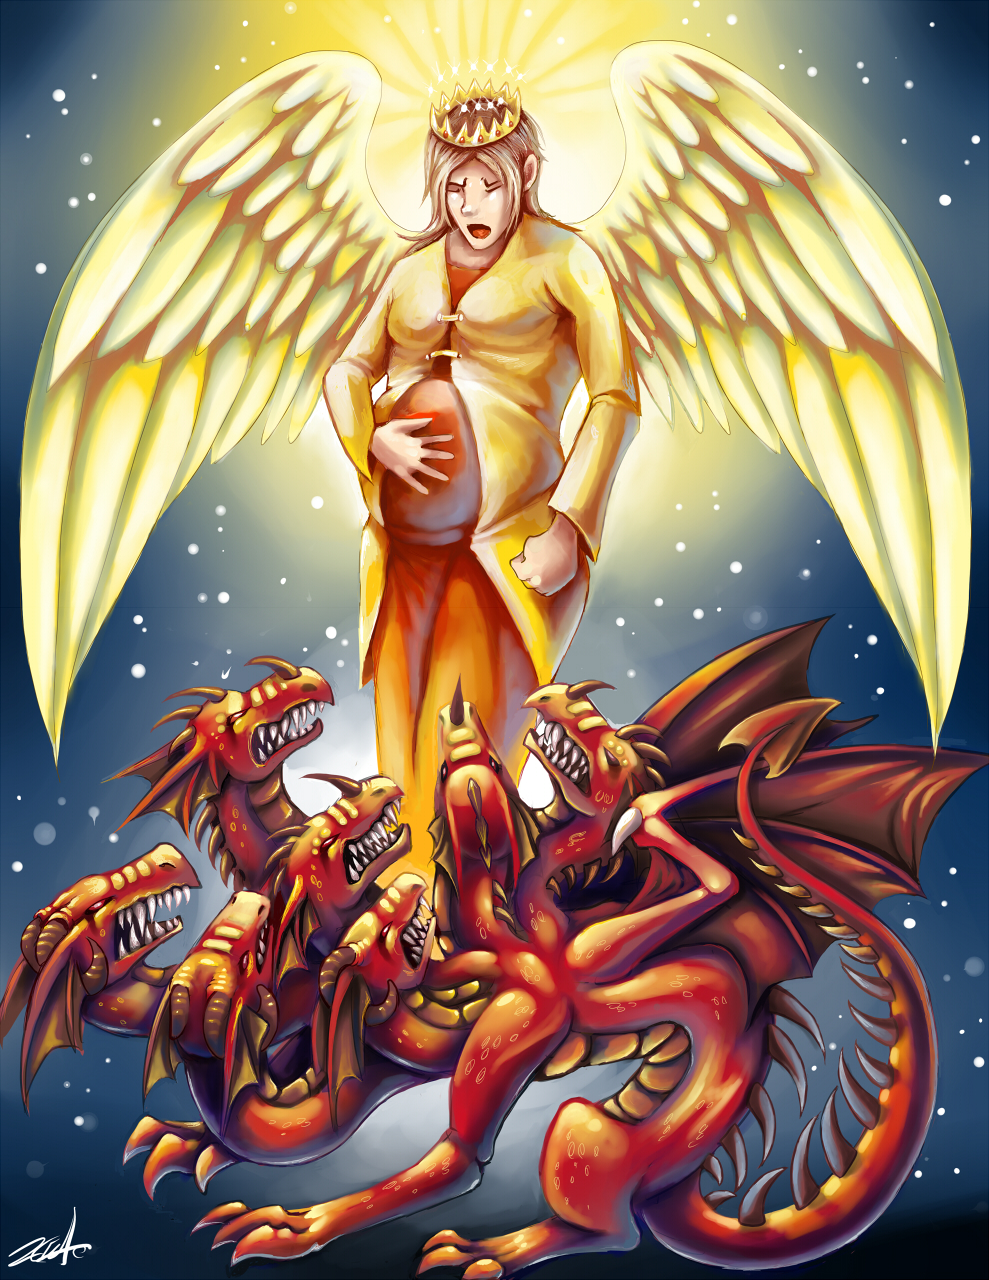 Biblical story - seven headed red dragon